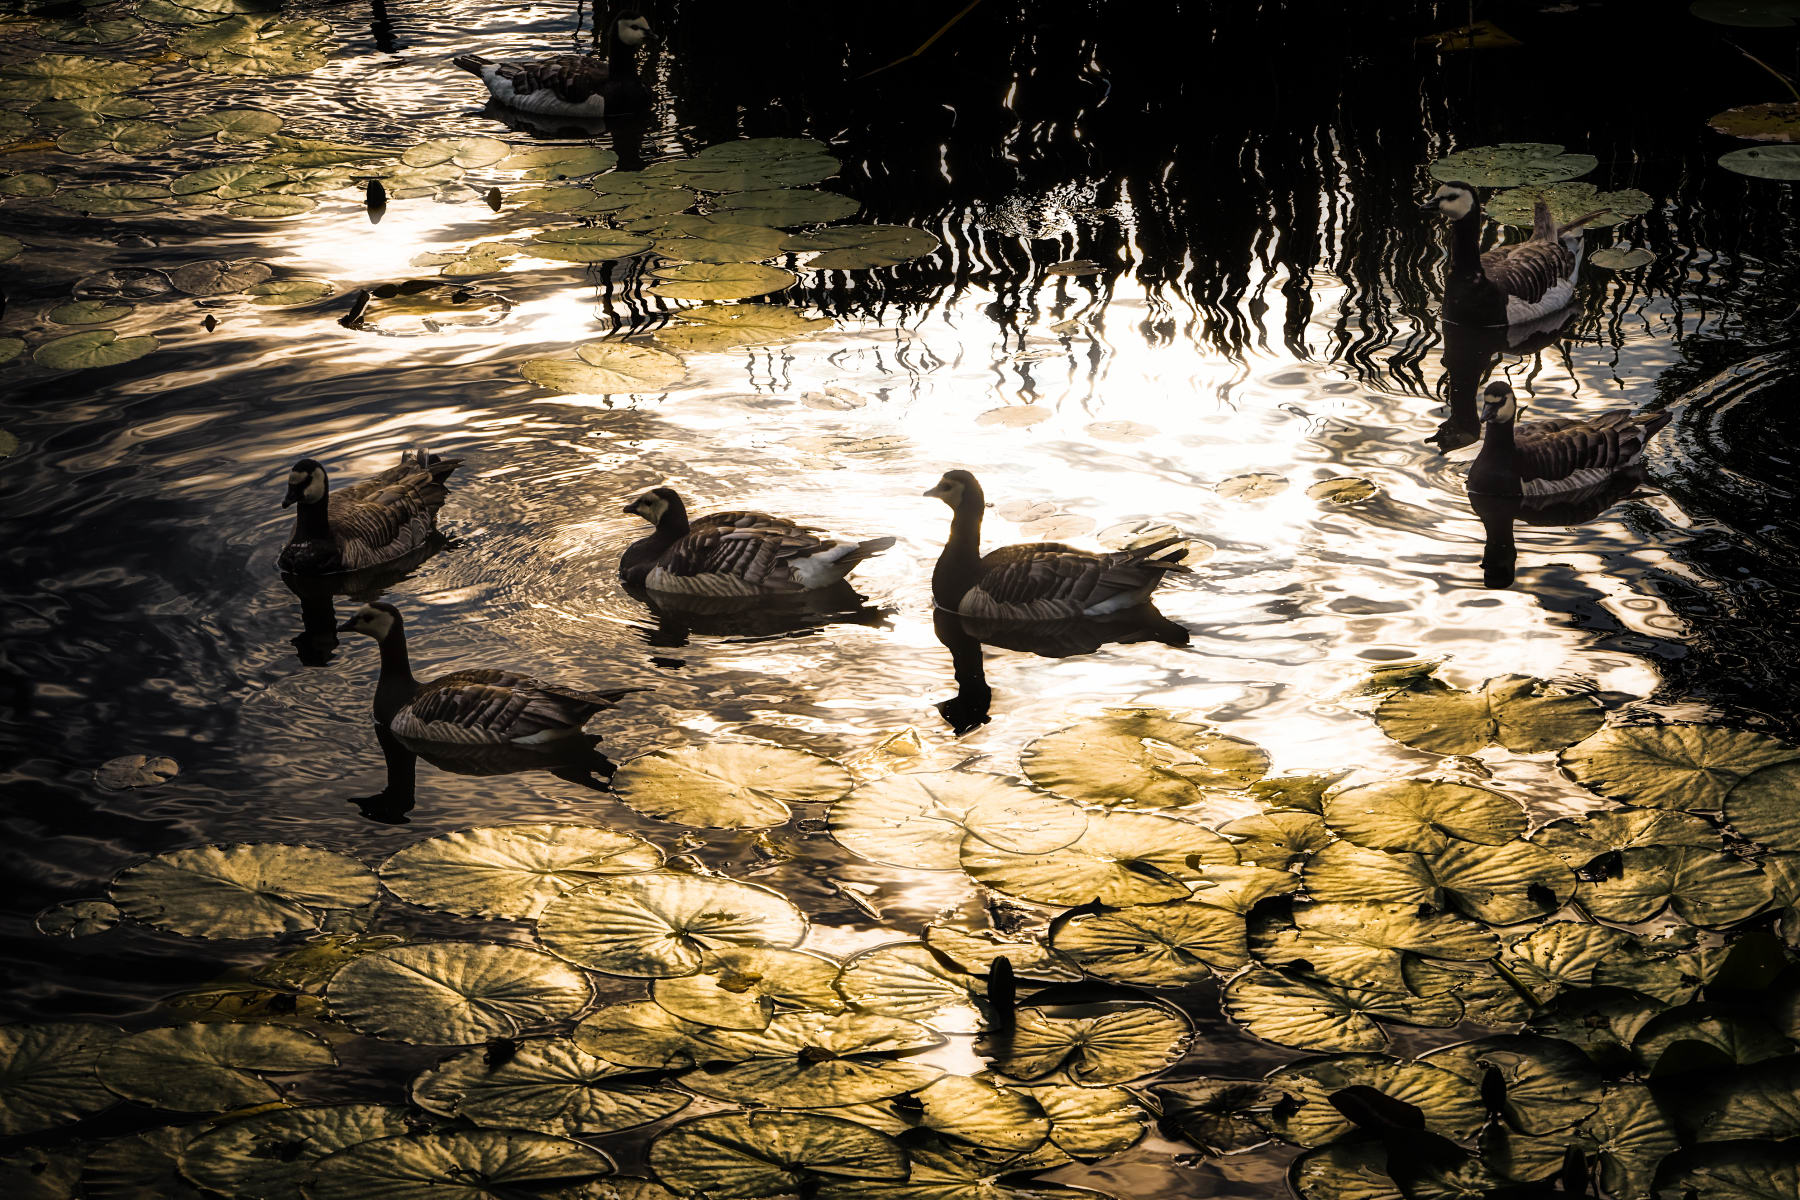 geese and waterlilies in glaring sunlight reflection